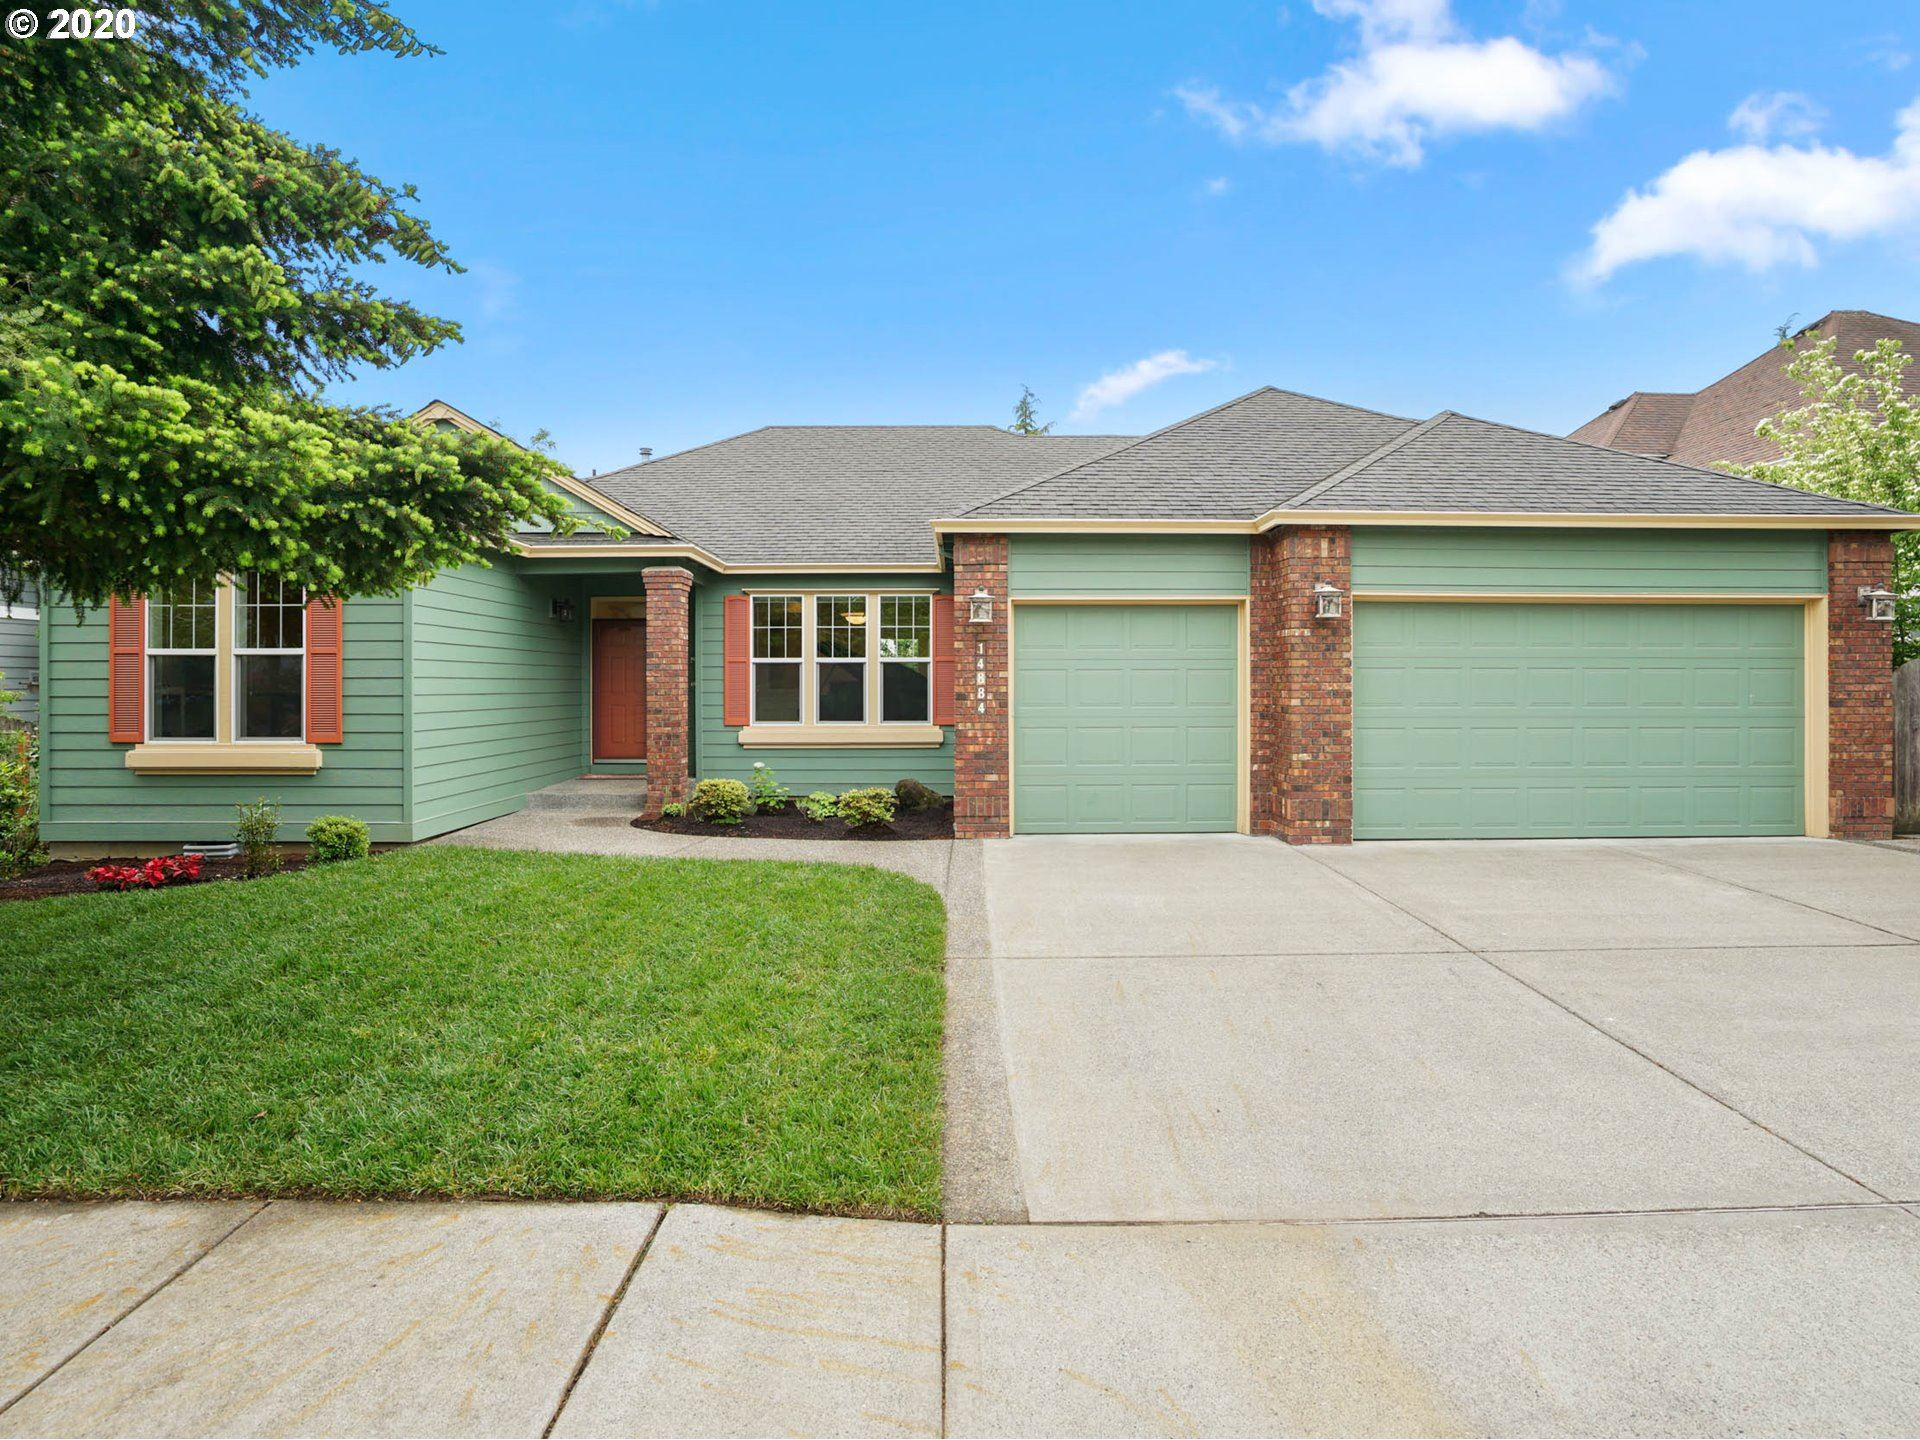 14884 NW VANCE DR, Portland, OR 97229 - MLS#: 20142377